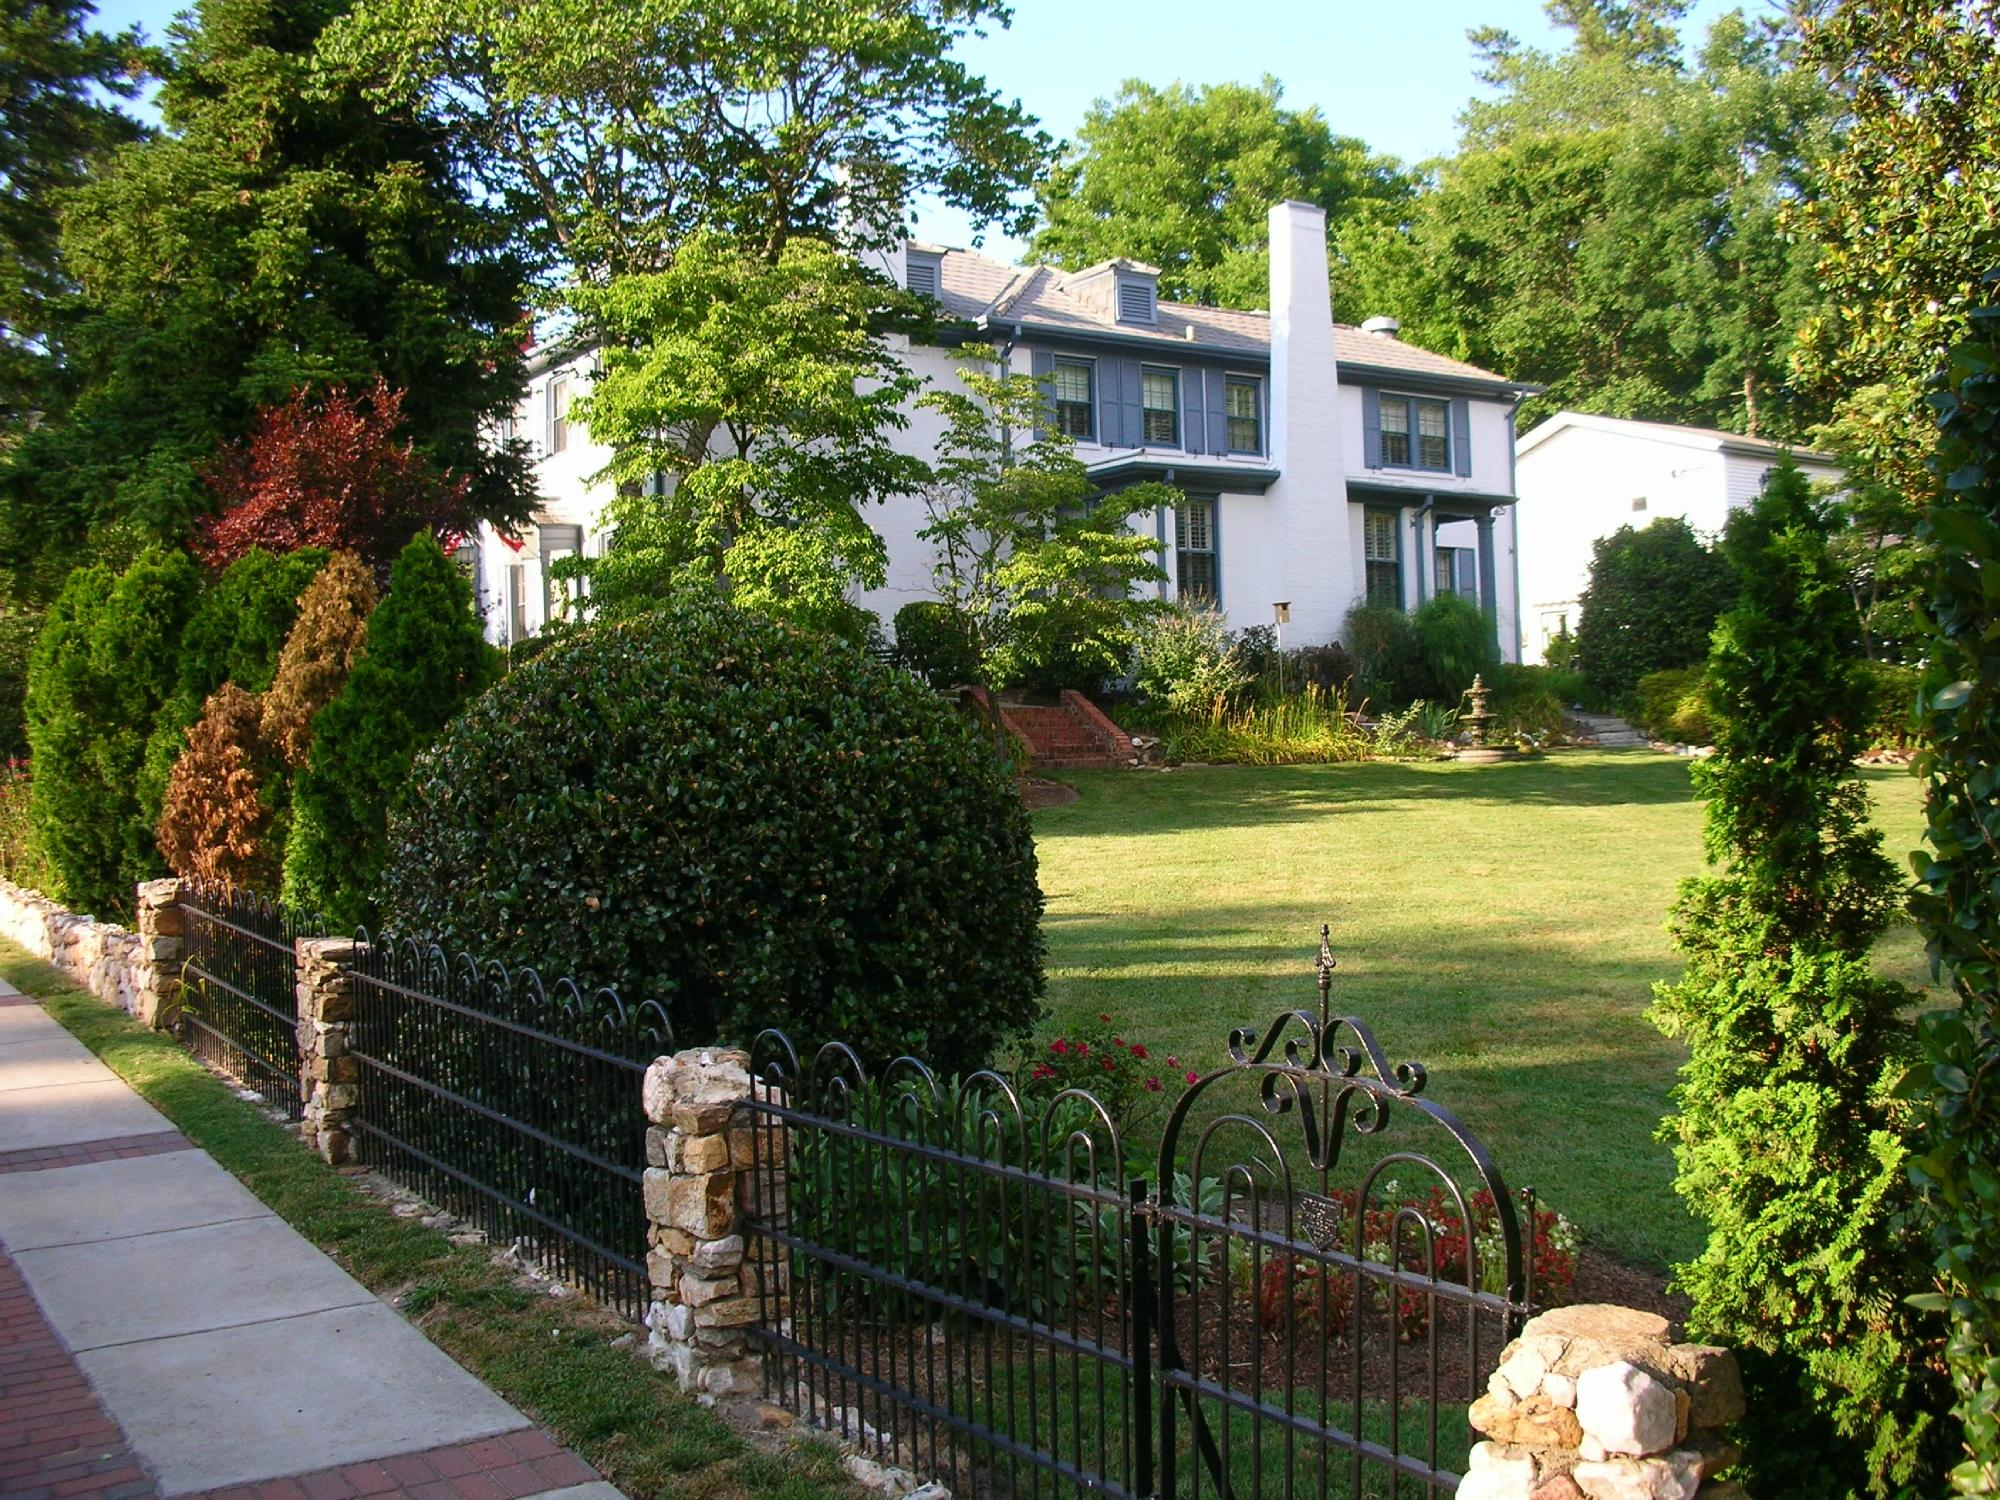 ‪Fuquay Mineral Spring Inn and Garden‬